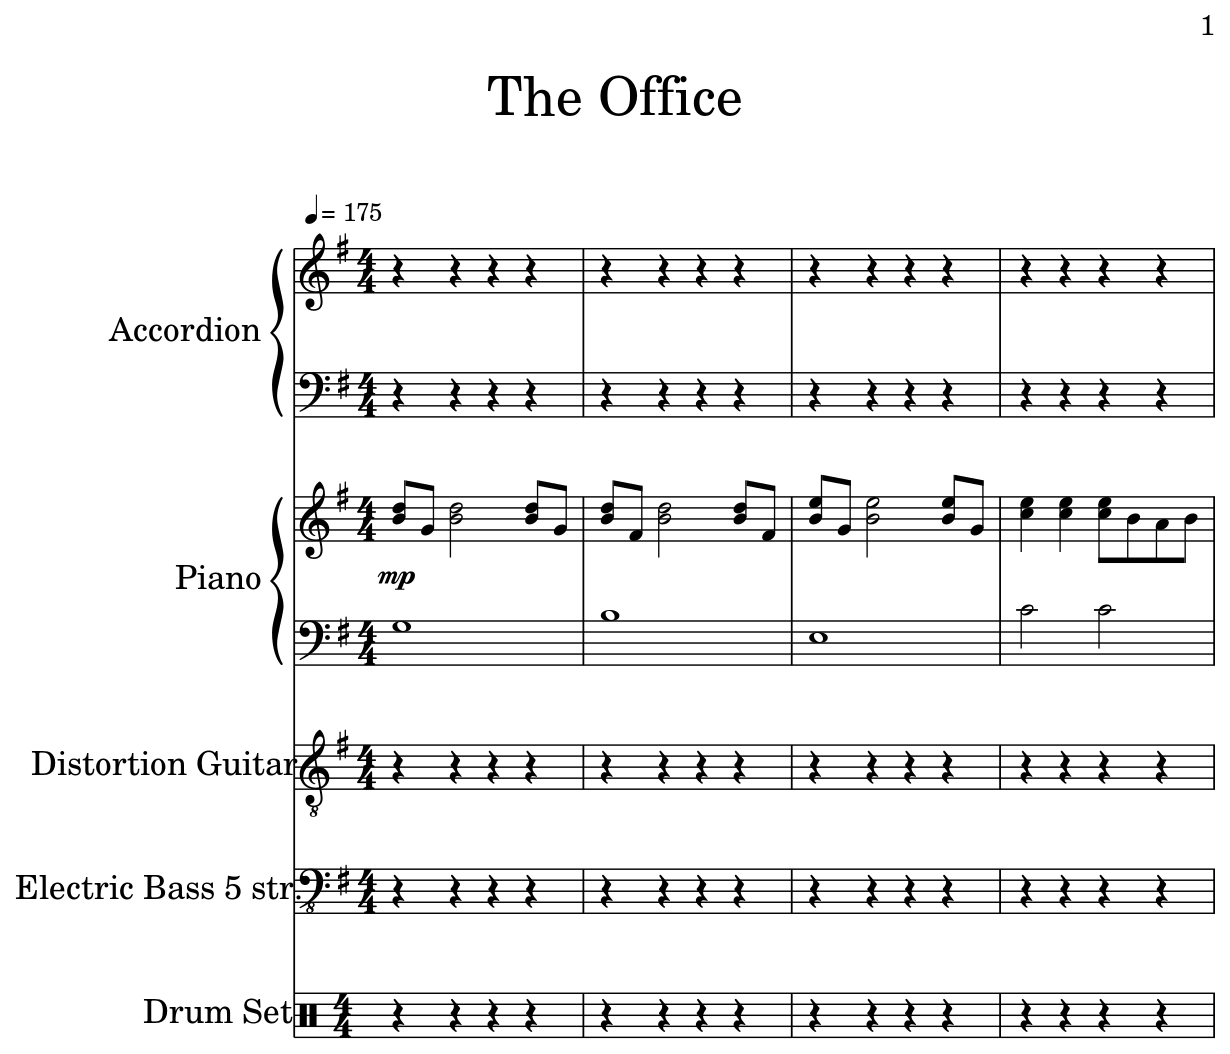 the office sheet music for accordion piano distortion guitar